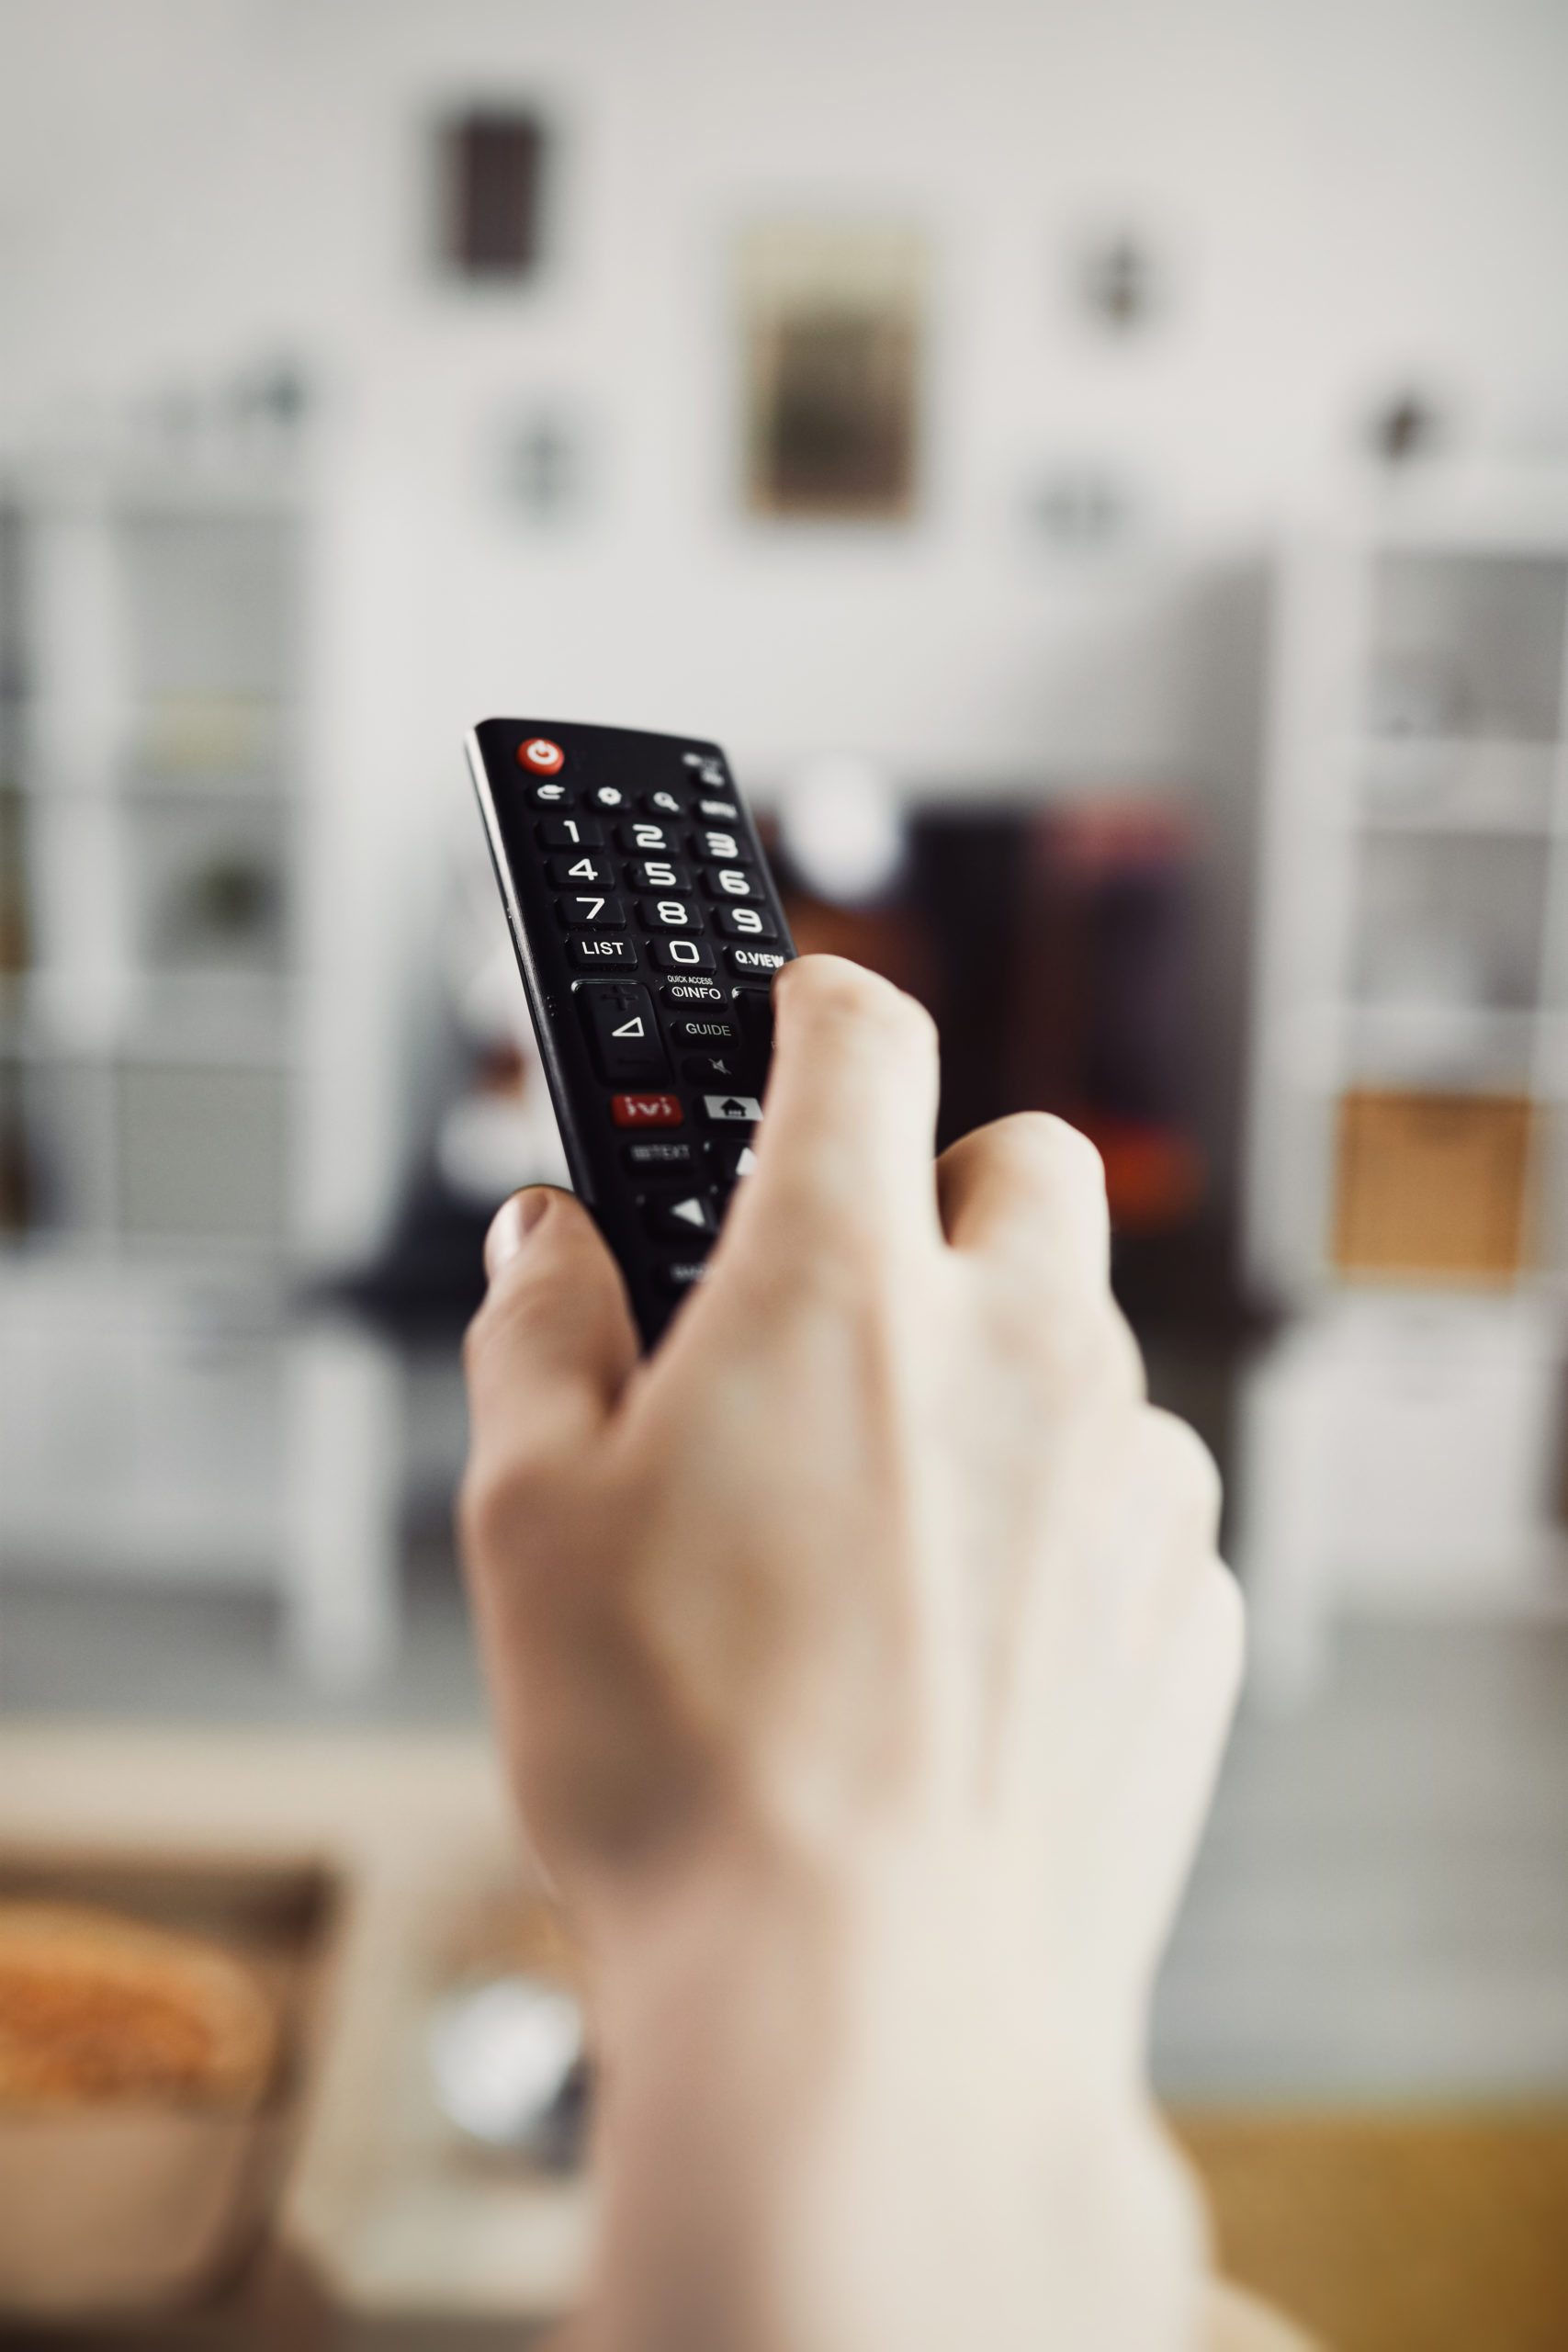 Retune Freeview lost channels https://elements.envato.com/closeup-hand-holding-tv-remote-BQWR5ZX